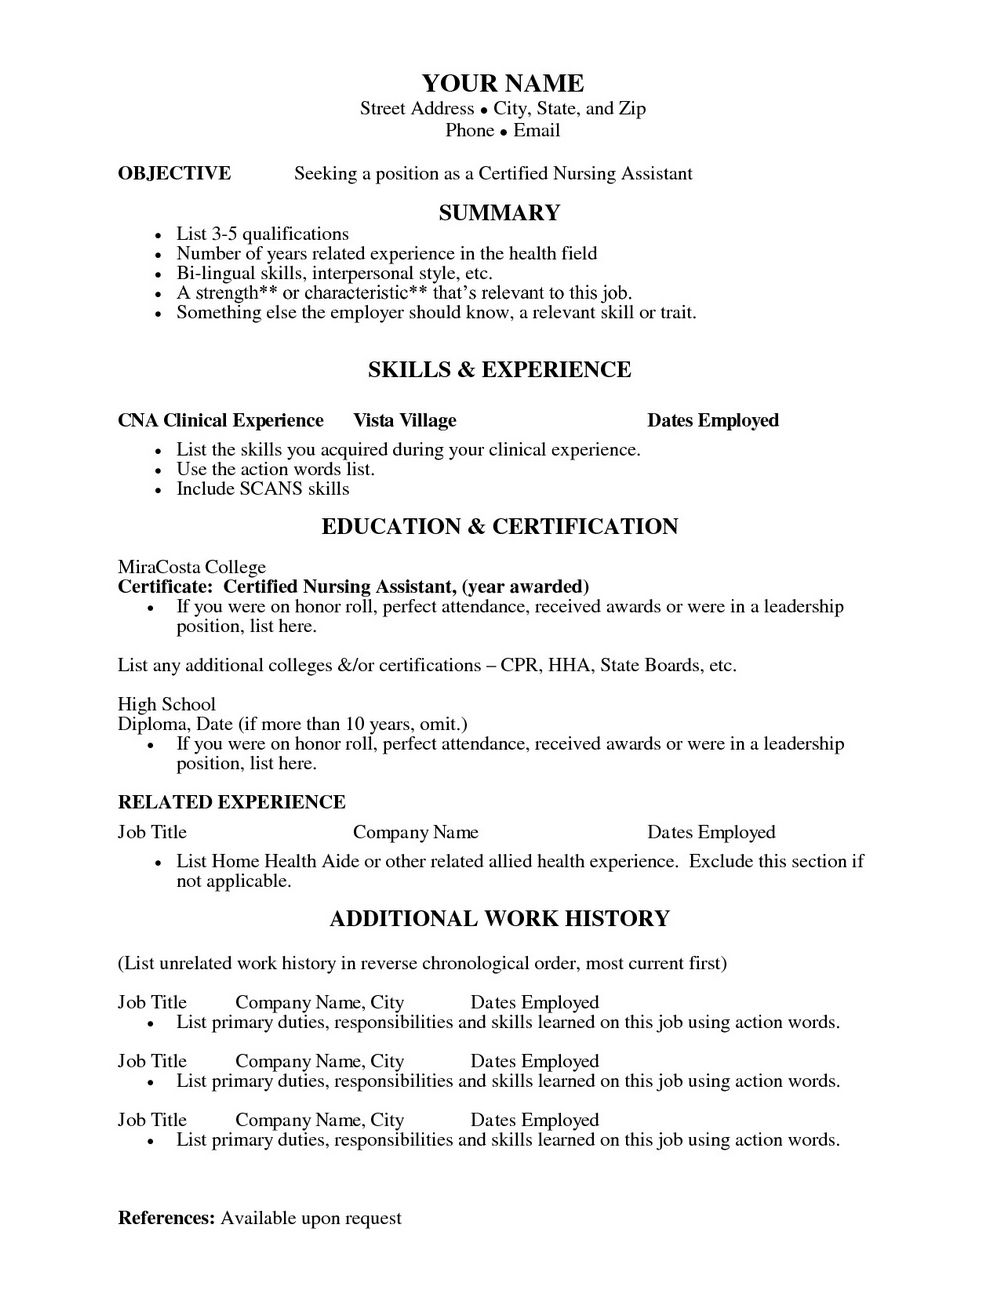 Resume Template For Nursing Assistant